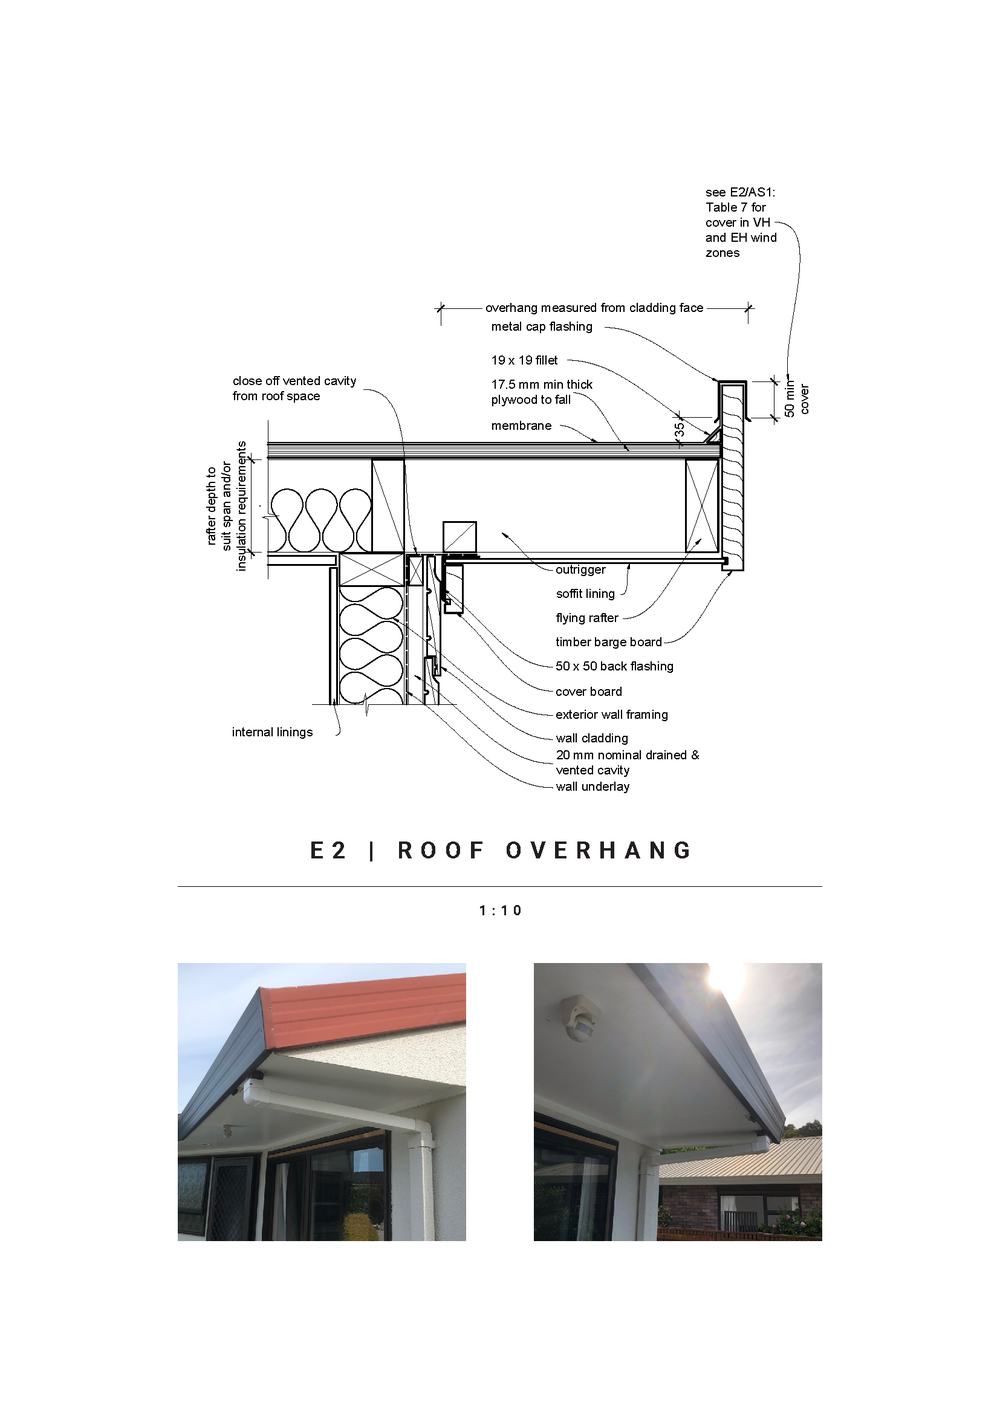 NZ BUILDING CODE JOURNAL_Page_14.png